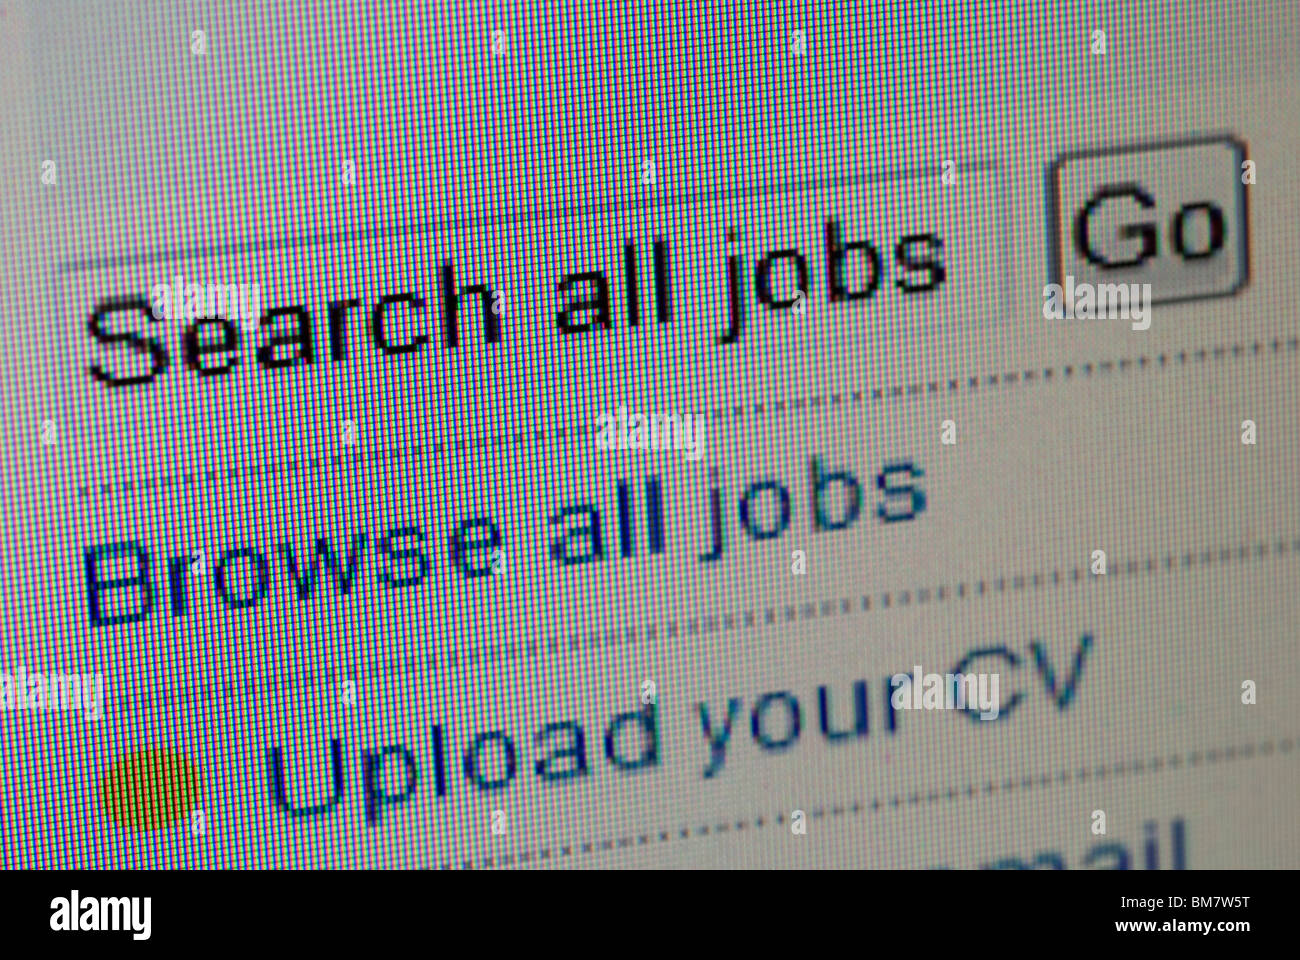 job search online - Stock Image